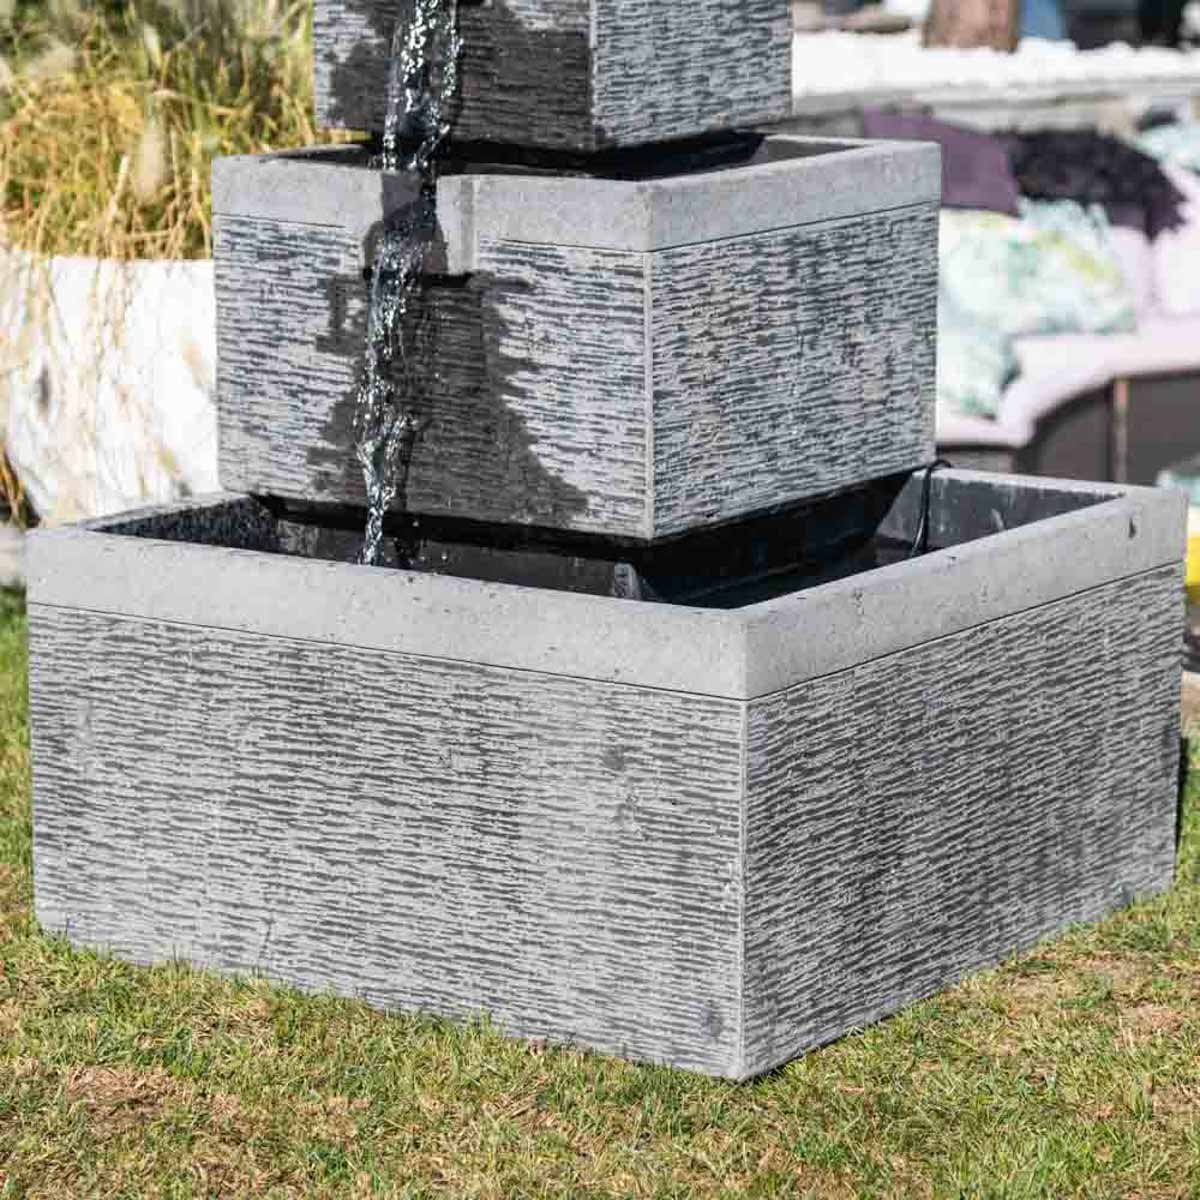 fontaine japonaise zen bien jardin japonais miniature exterieur rocaille jardin zen fontaine. Black Bedroom Furniture Sets. Home Design Ideas